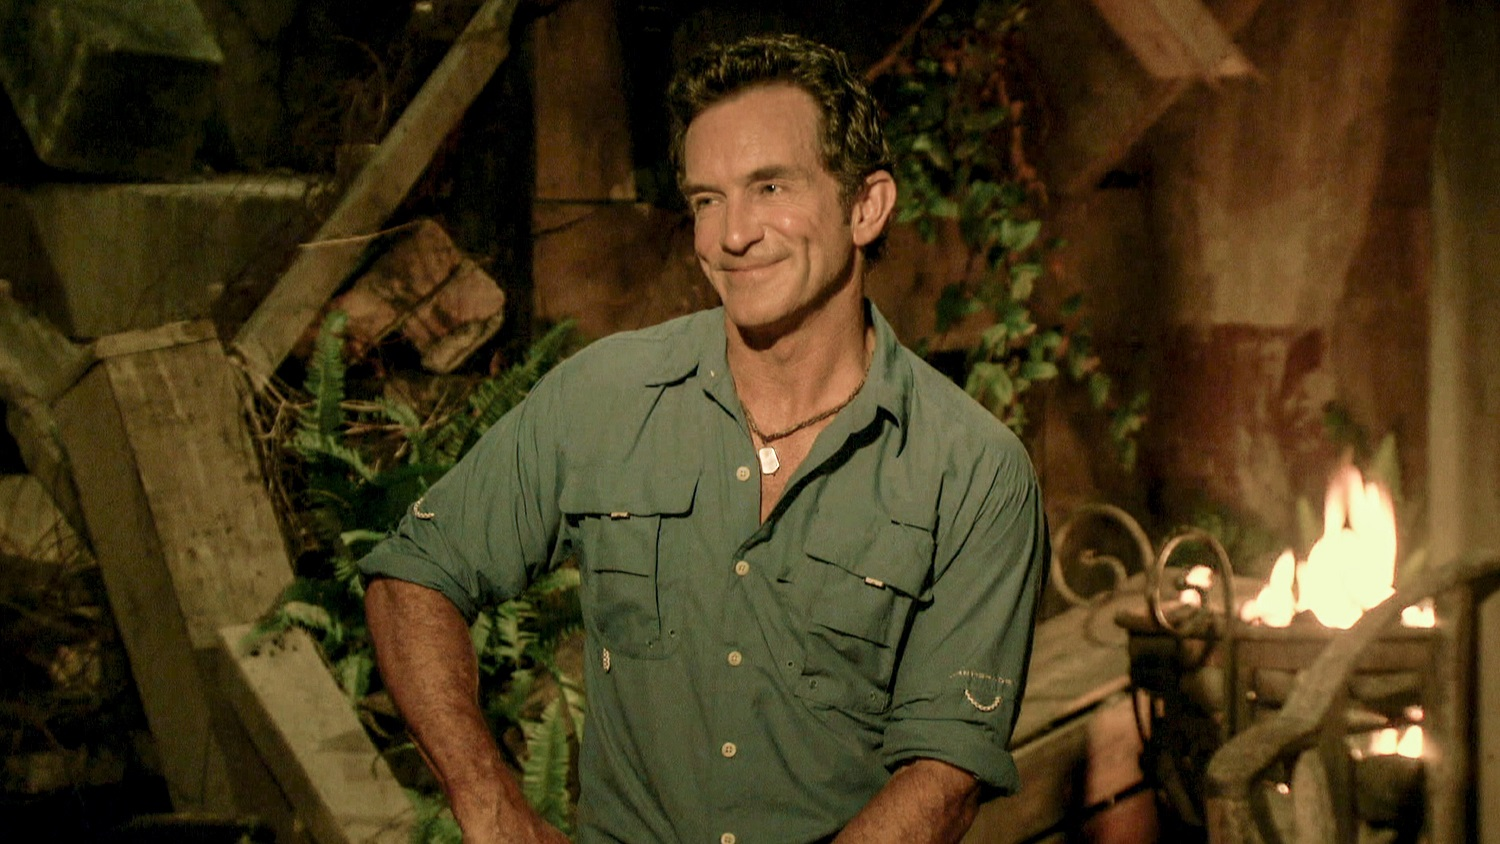 Jeff Probst, host of 'Survivor 41' sits and smiles during tribal council